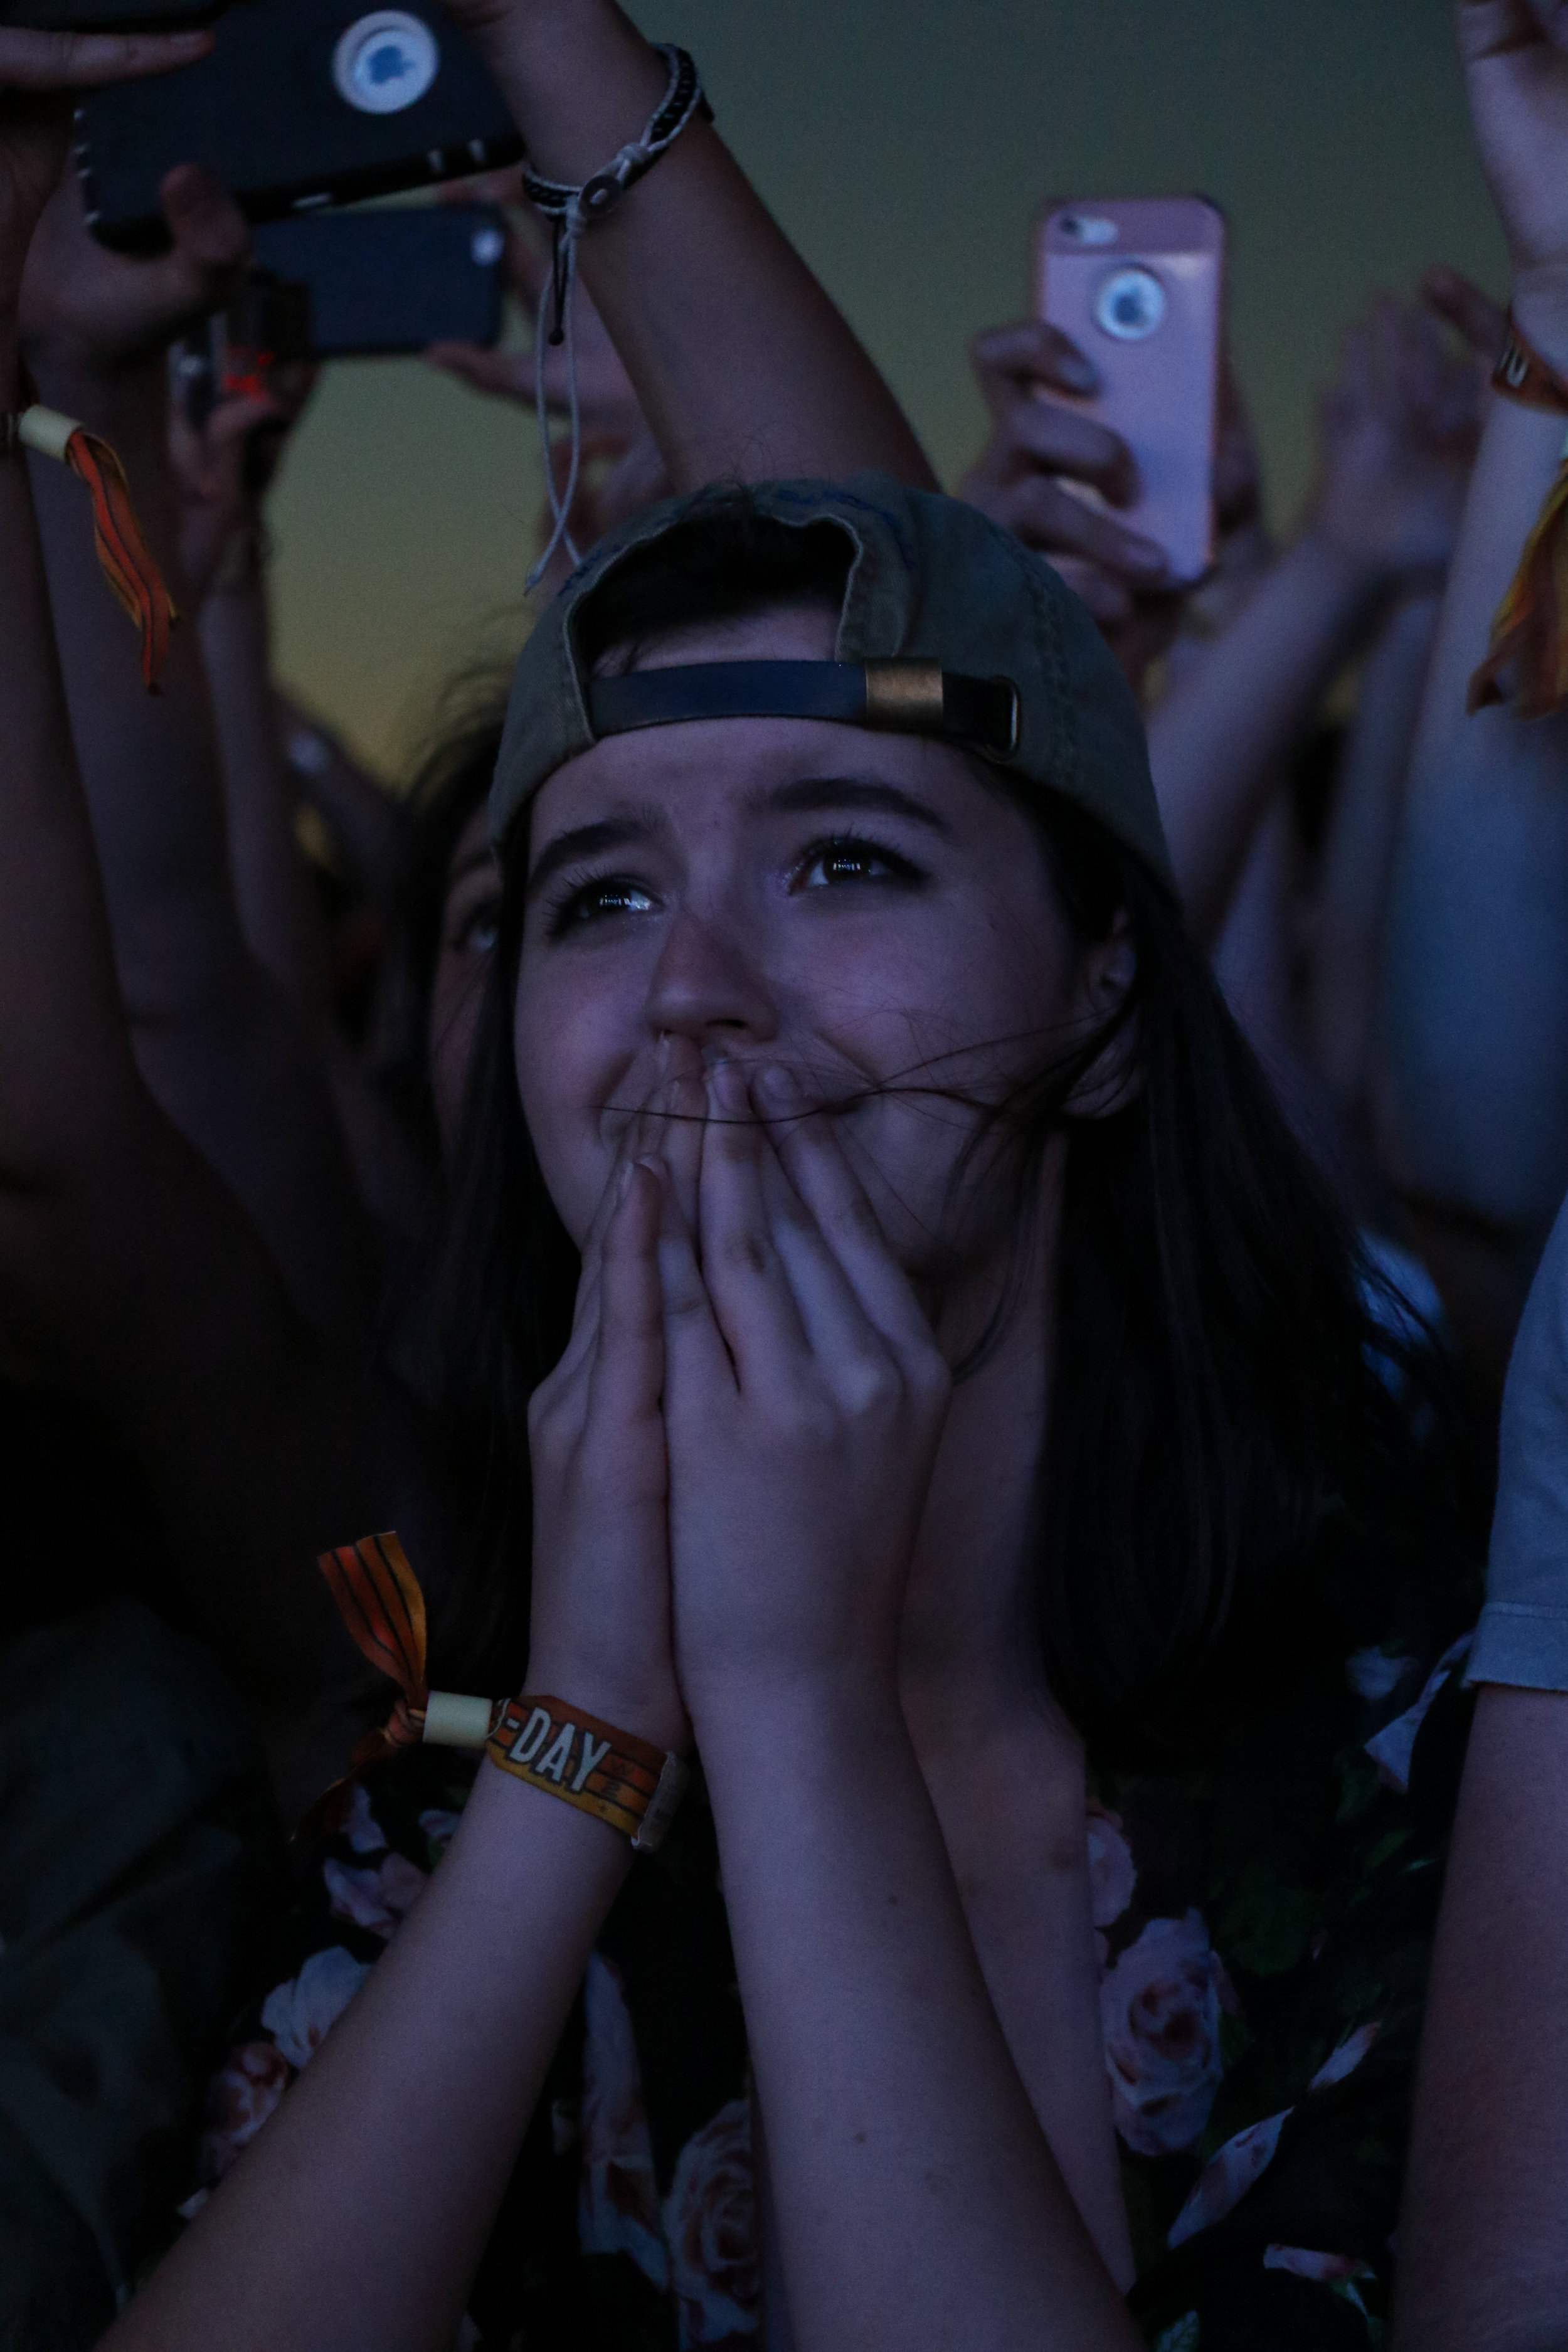 A fan is caught in an emotional moment during Two Door Cinema Club's set.